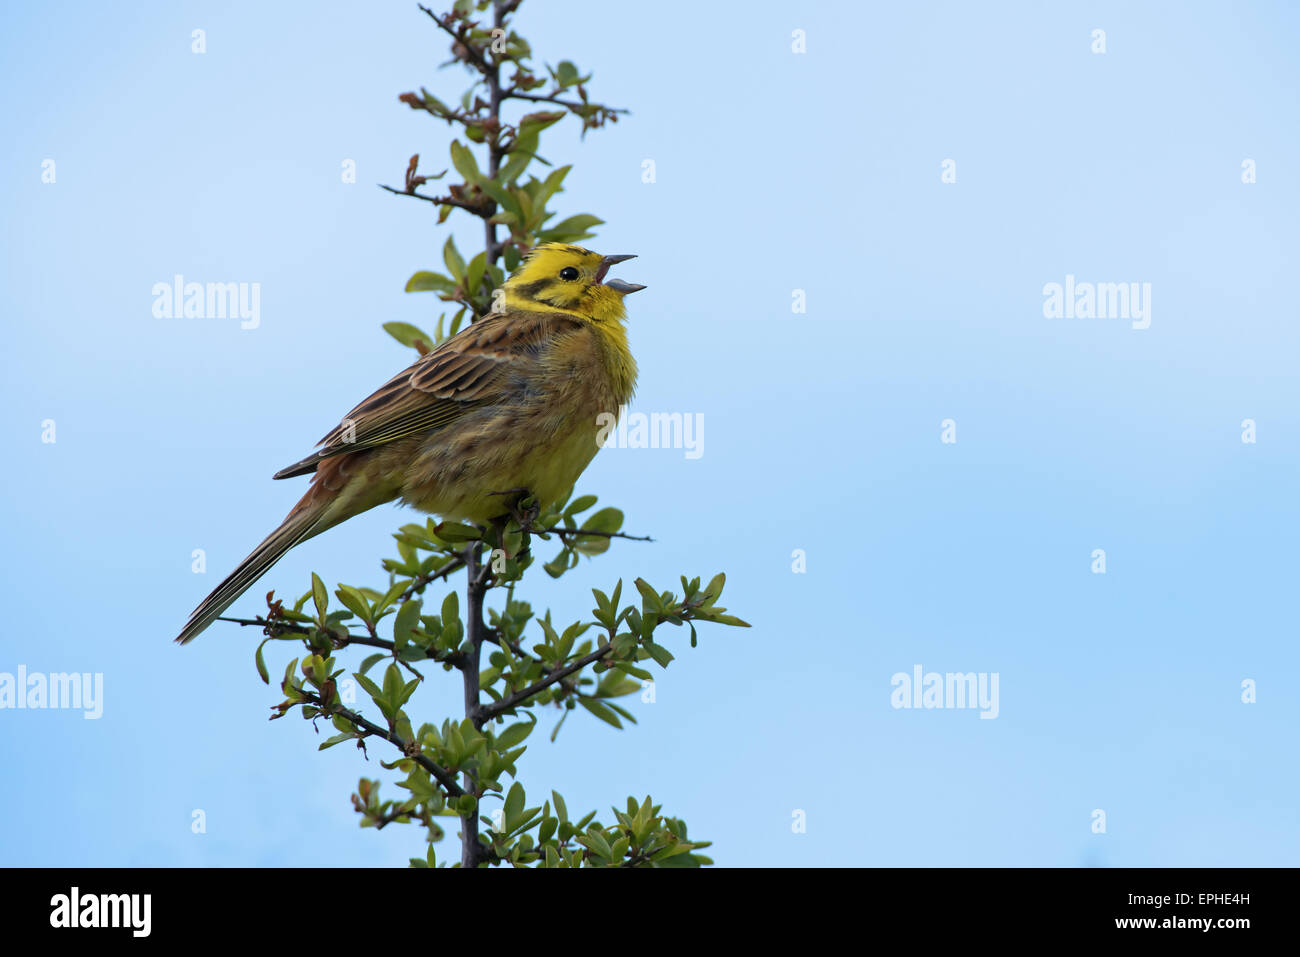 Male Yellowhammer-Emberiza citrinella in song. Spring. Uk - Stock Image